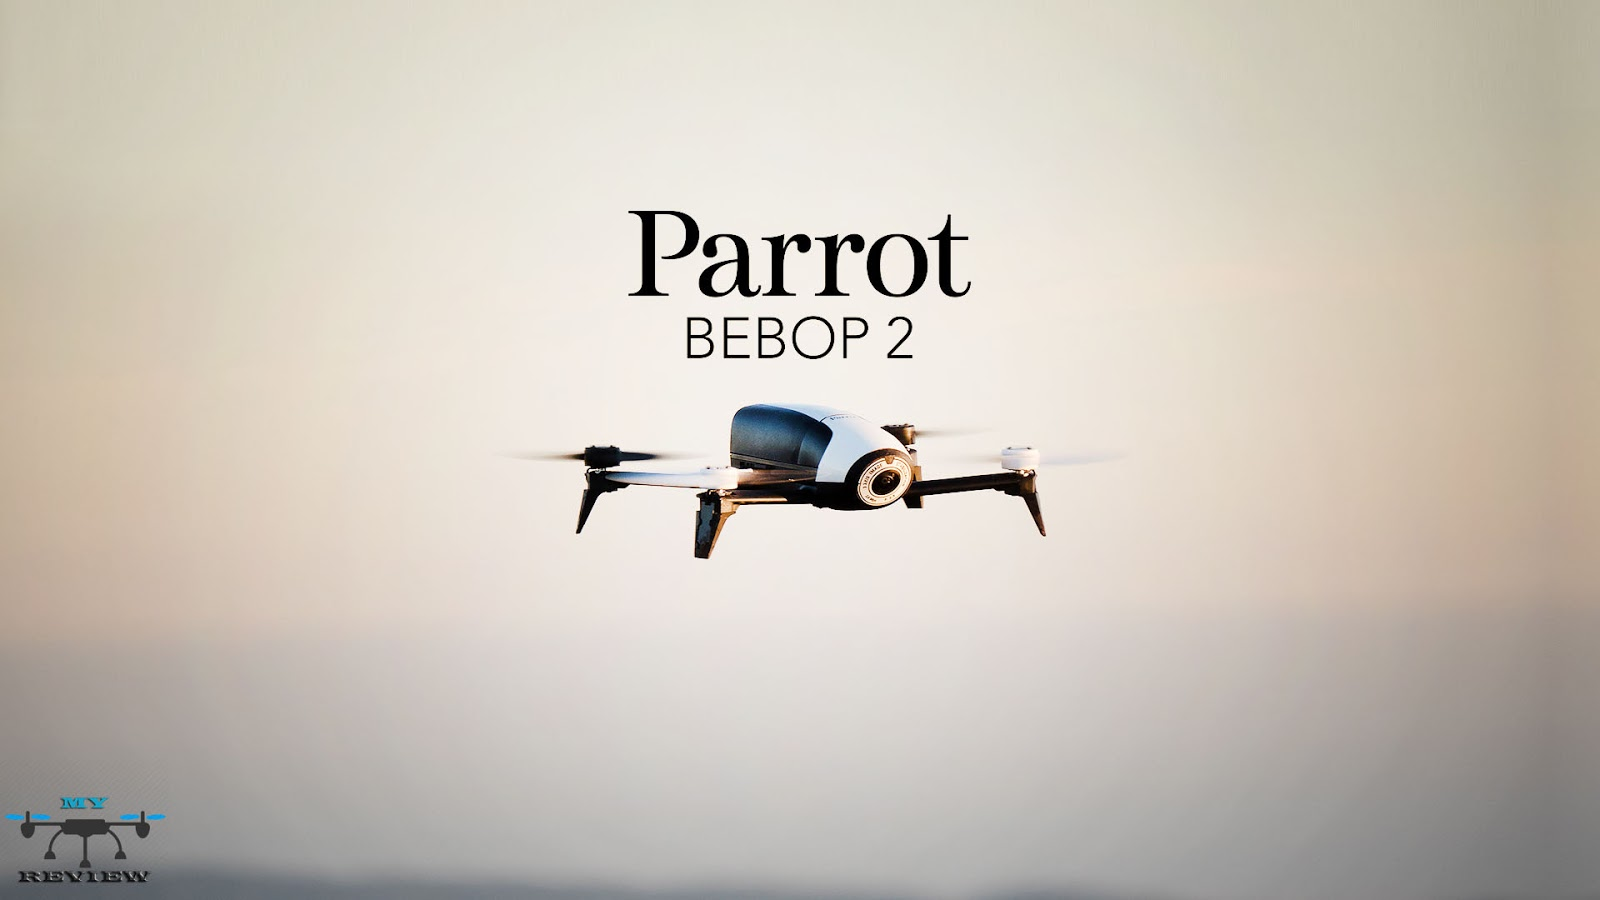 Parrot Bebop 2 The Famous Drone Of And Revolution 1 As You Know Is One Best In Market 2016 2017 It